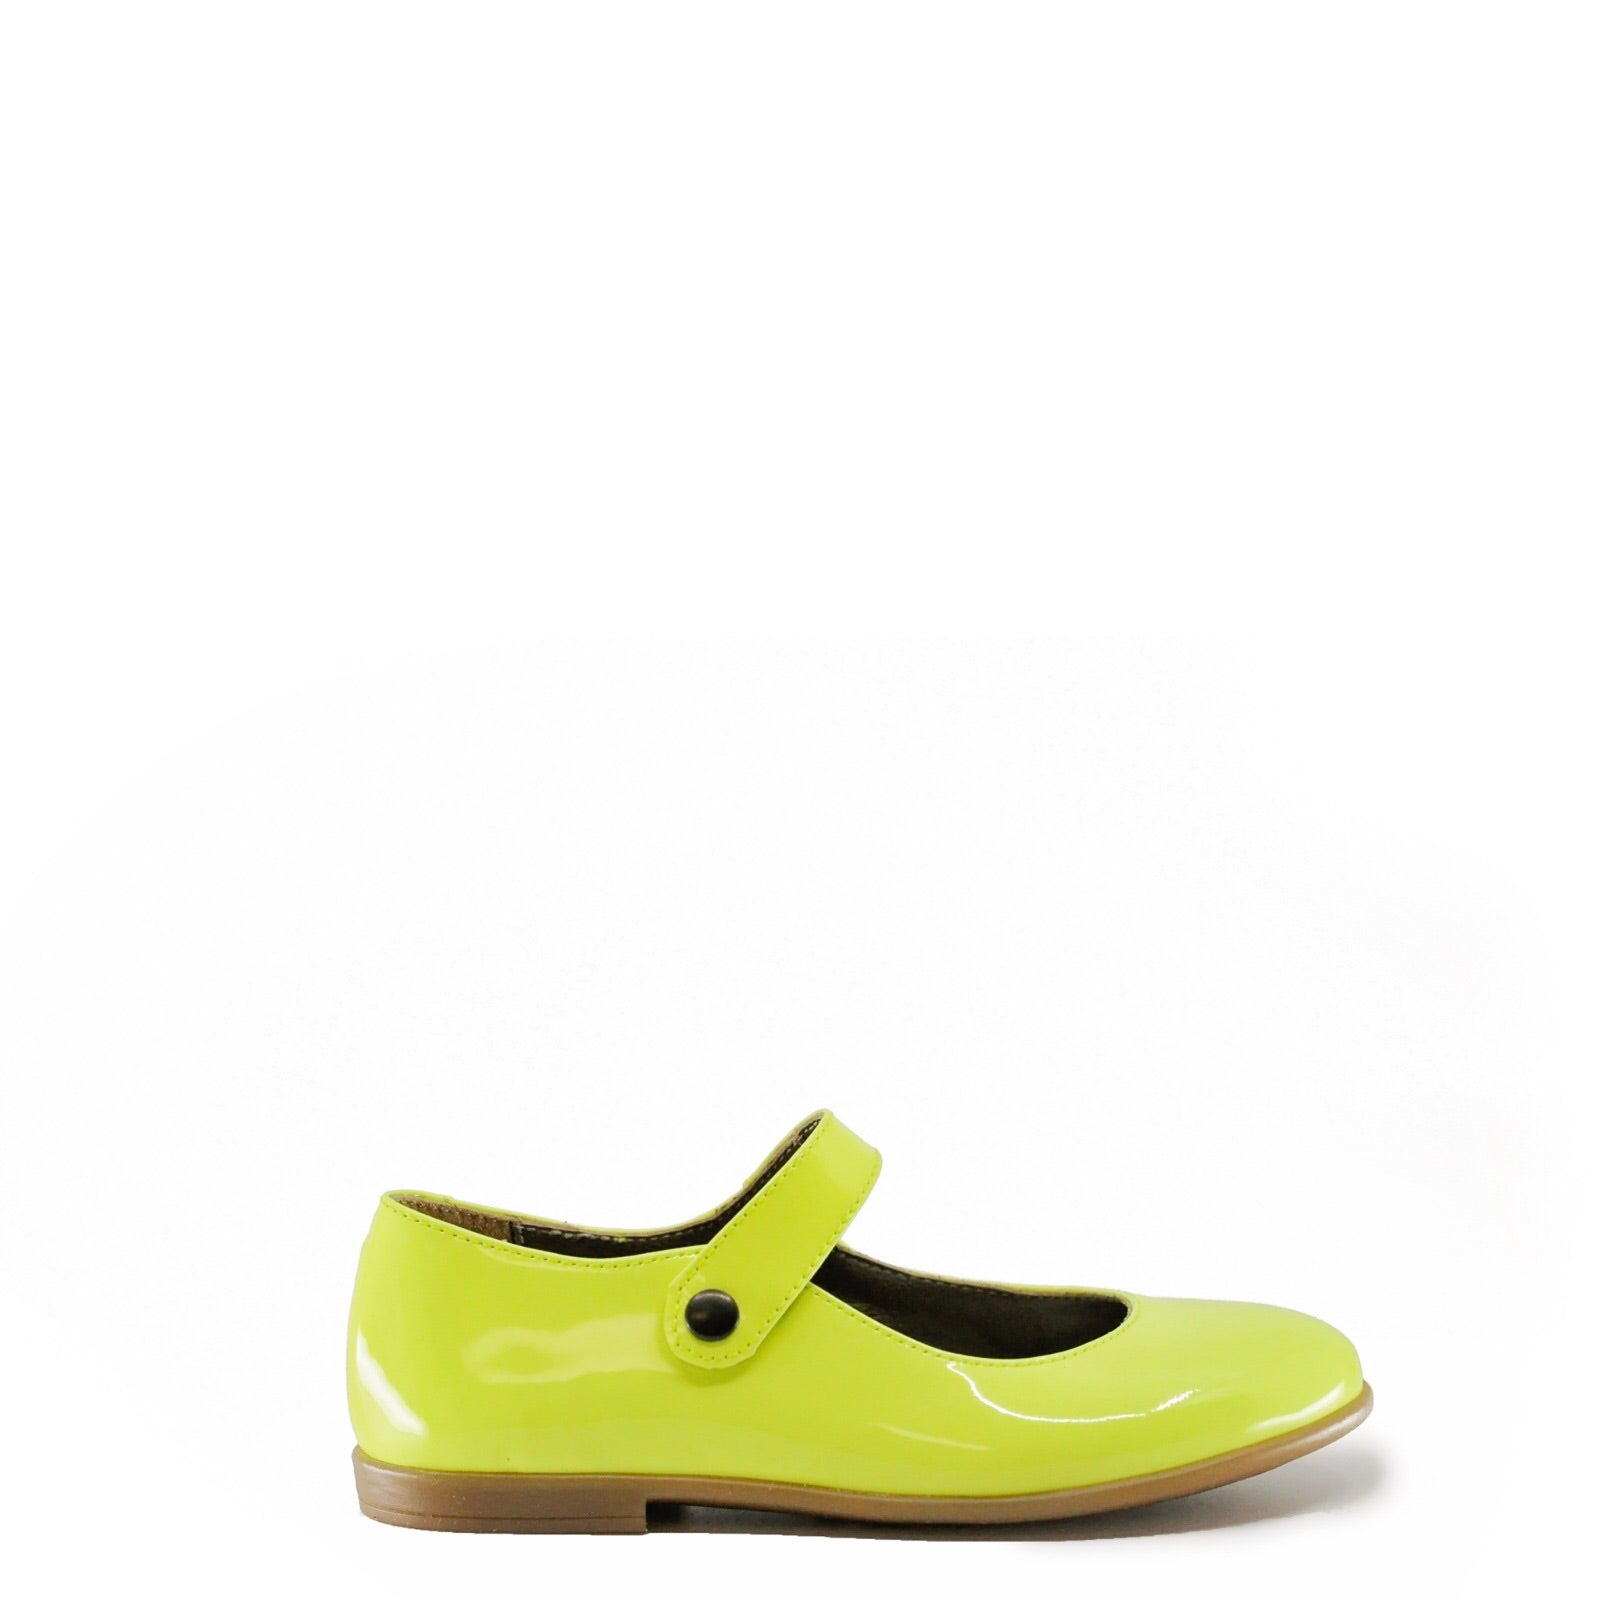 Pepe Neon Yellow Patent Mary Jane-Tassel Children Shoes